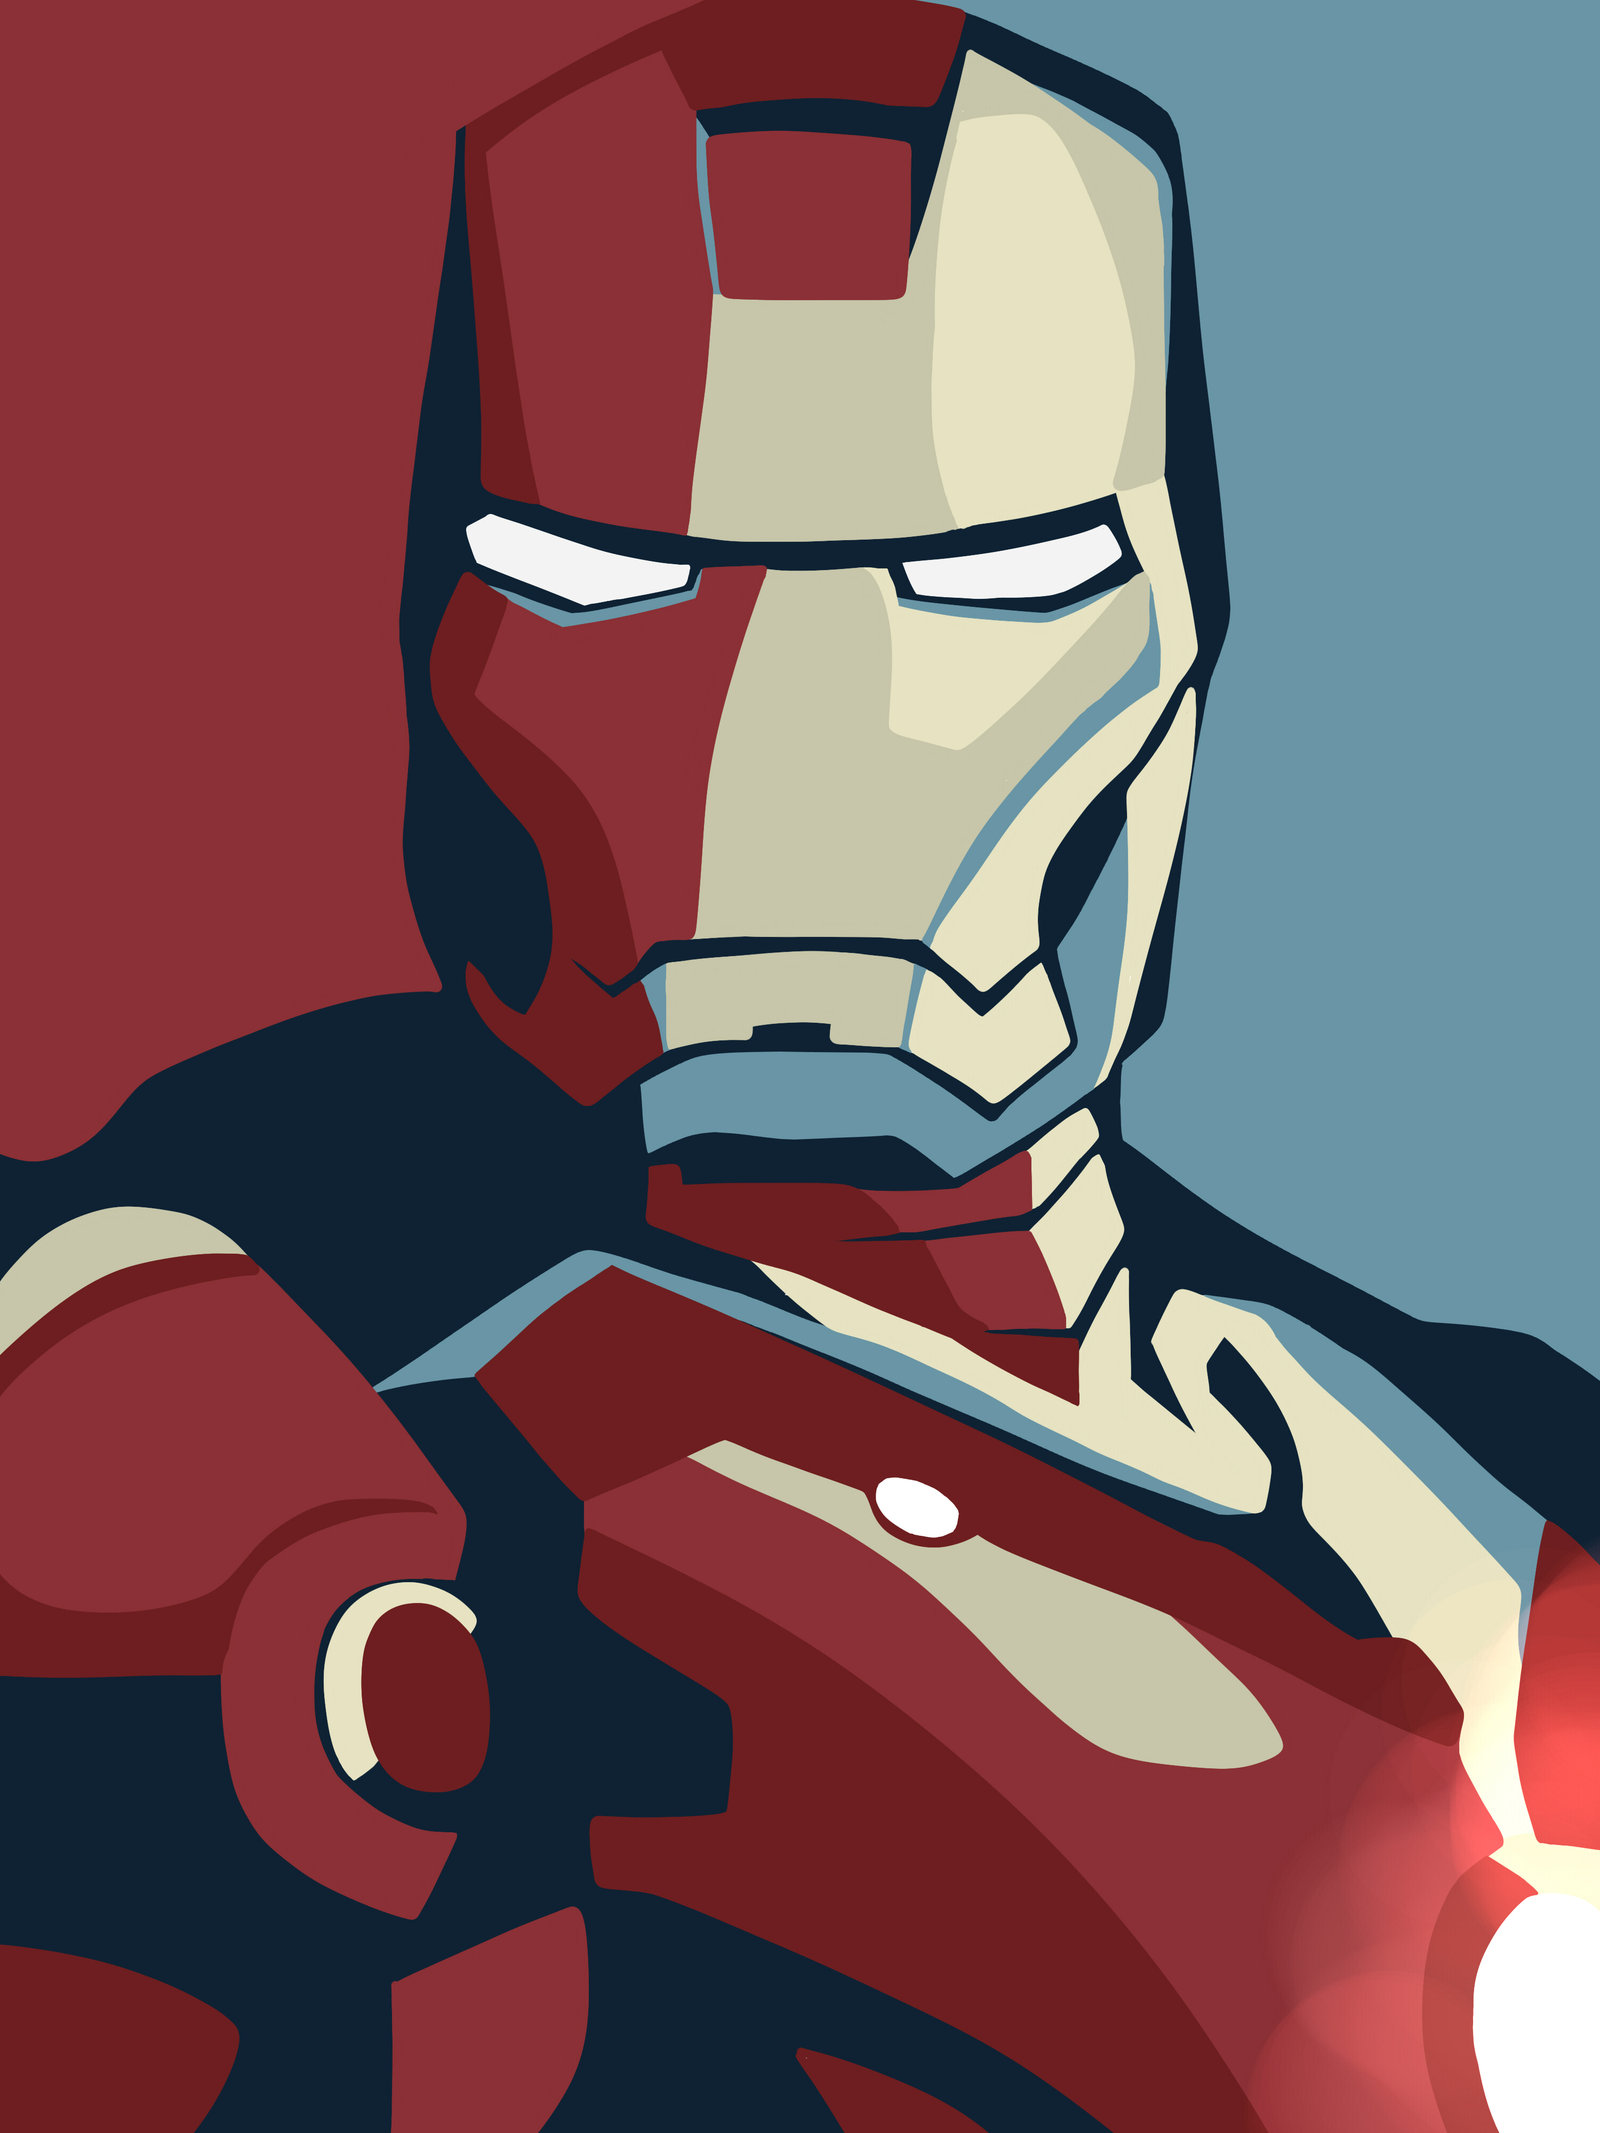 iron_man_poster_by_mewmewitems-d5ep0uy